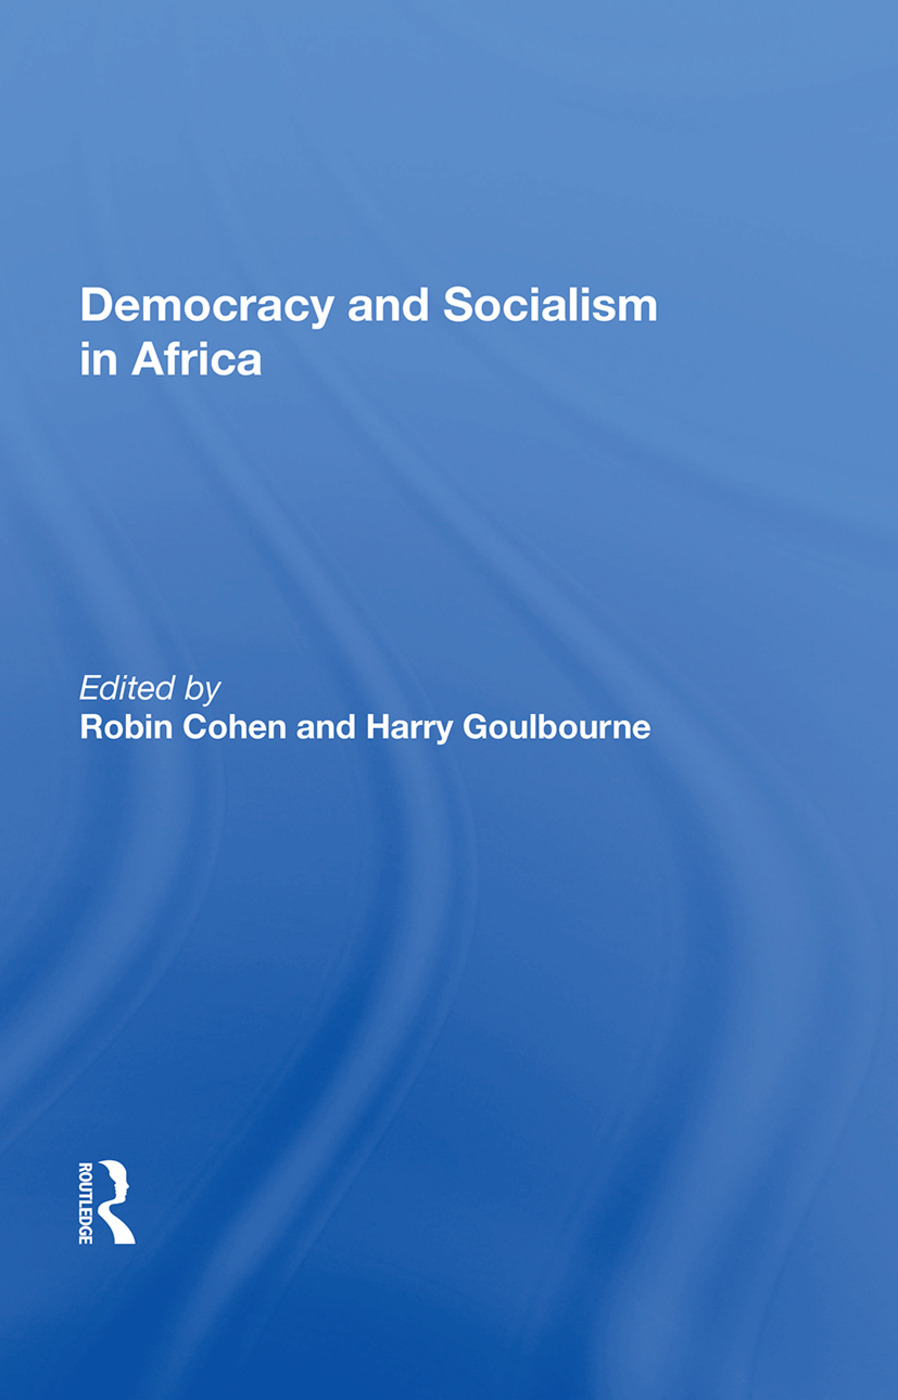 Democracy and Socialism in Africa